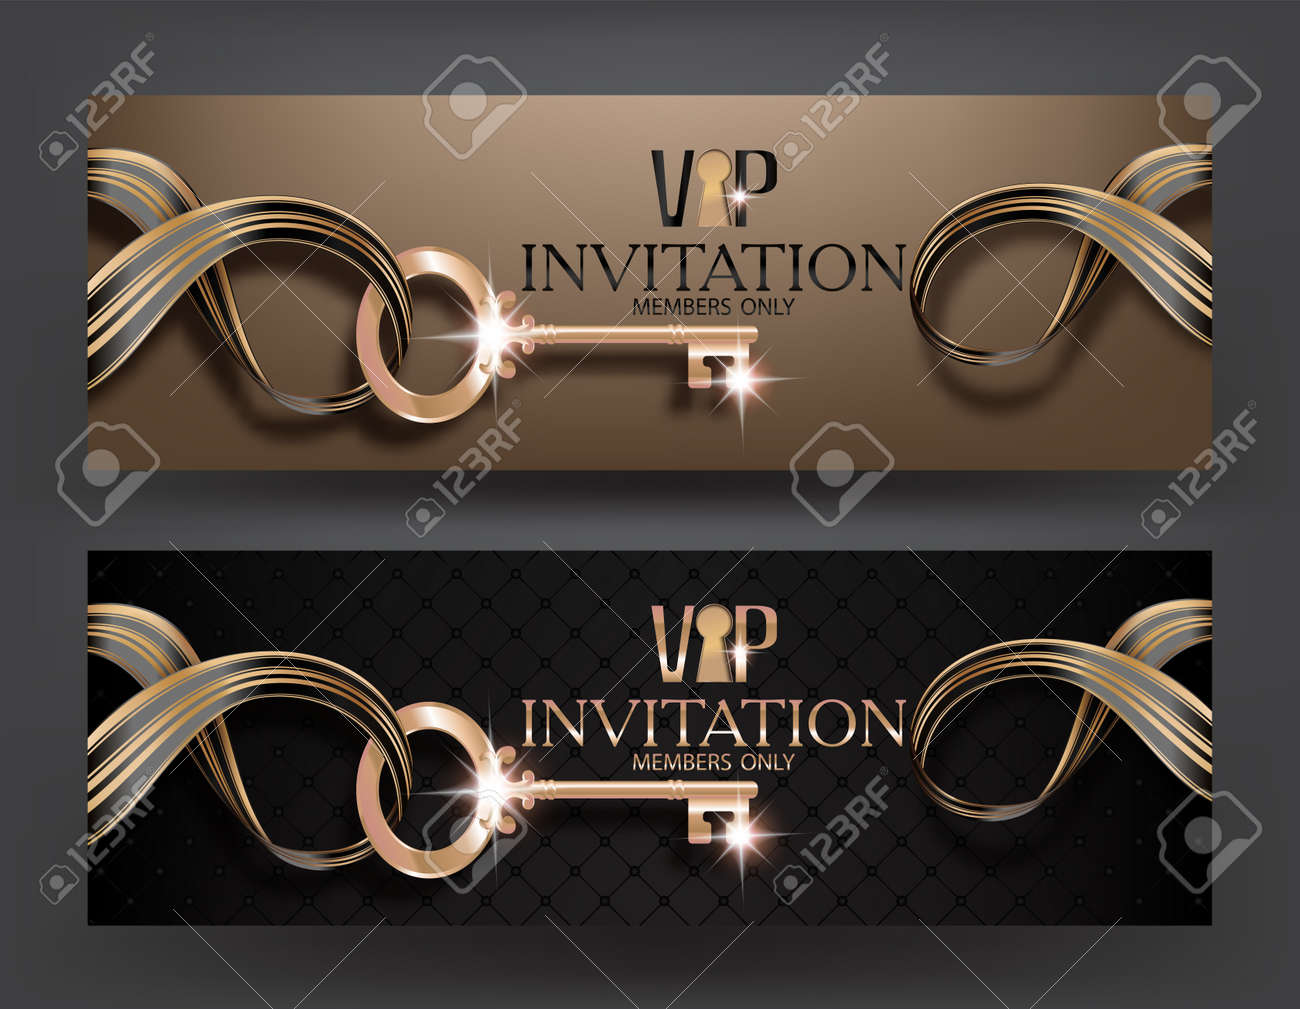 Vip invitation banners with key on striped ribbon and gold lettering vector vip invitation banners with key on striped ribbon and gold lettering vector illustration stopboris Choice Image